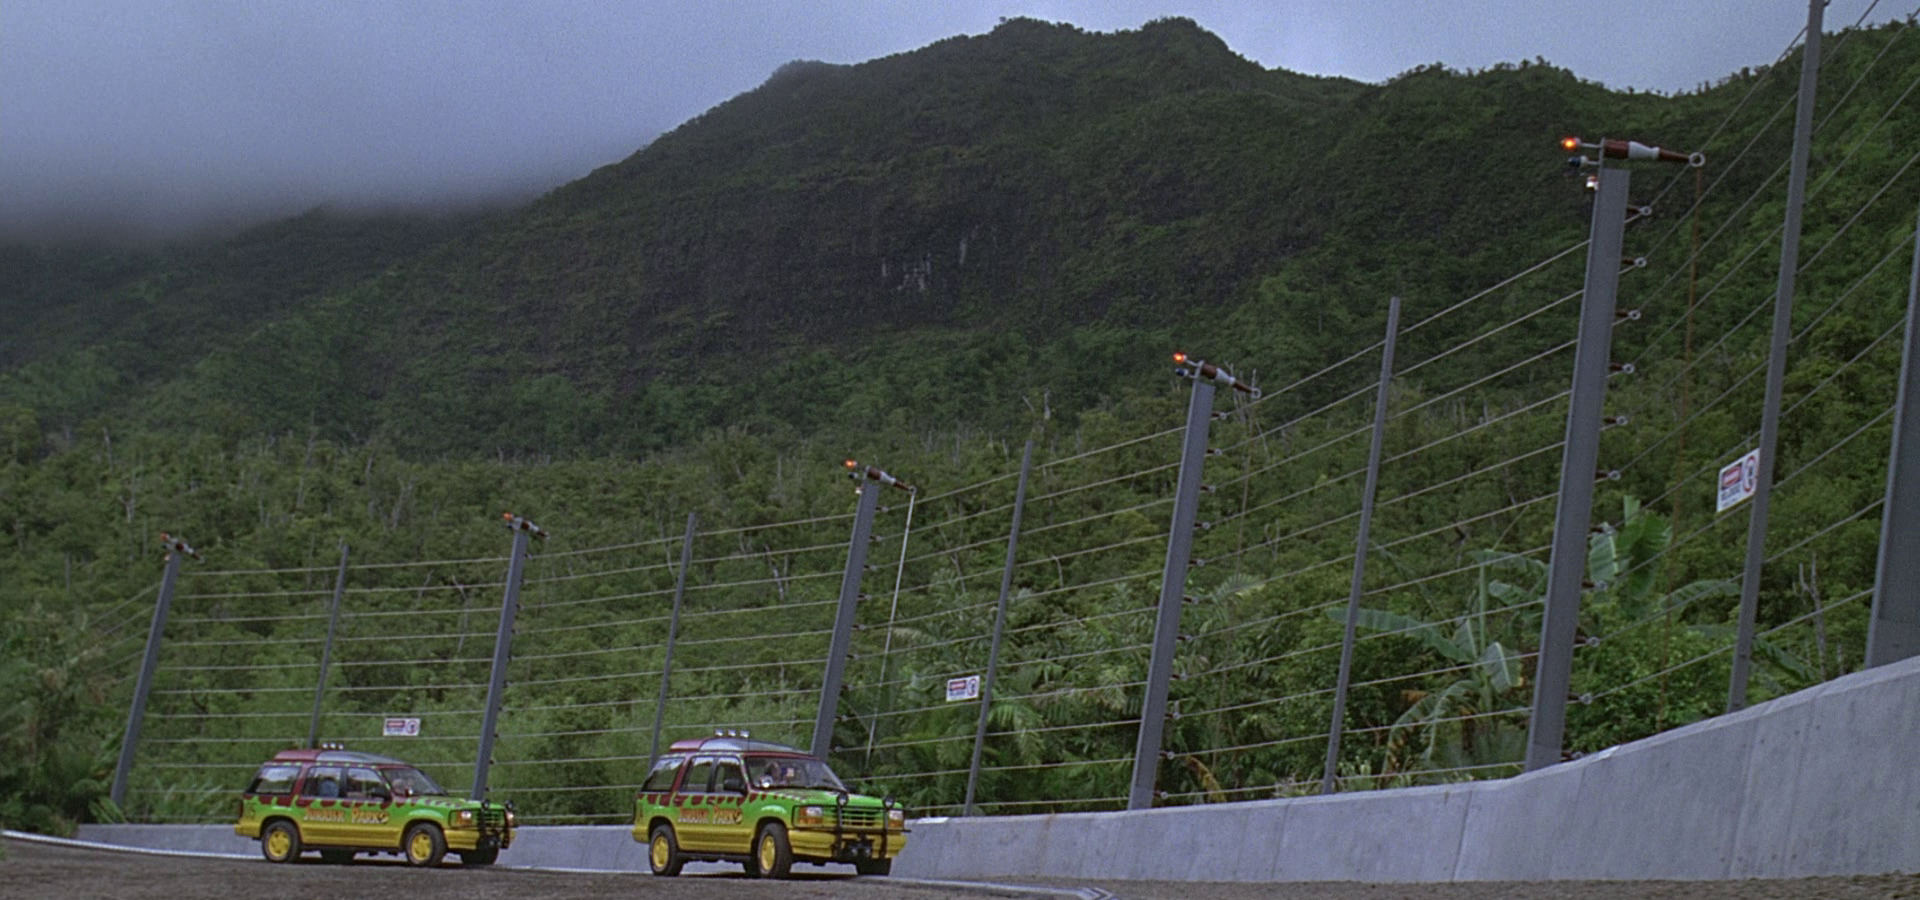 Electric fence jurassic park wiki fandom powered by wikia for T rex location